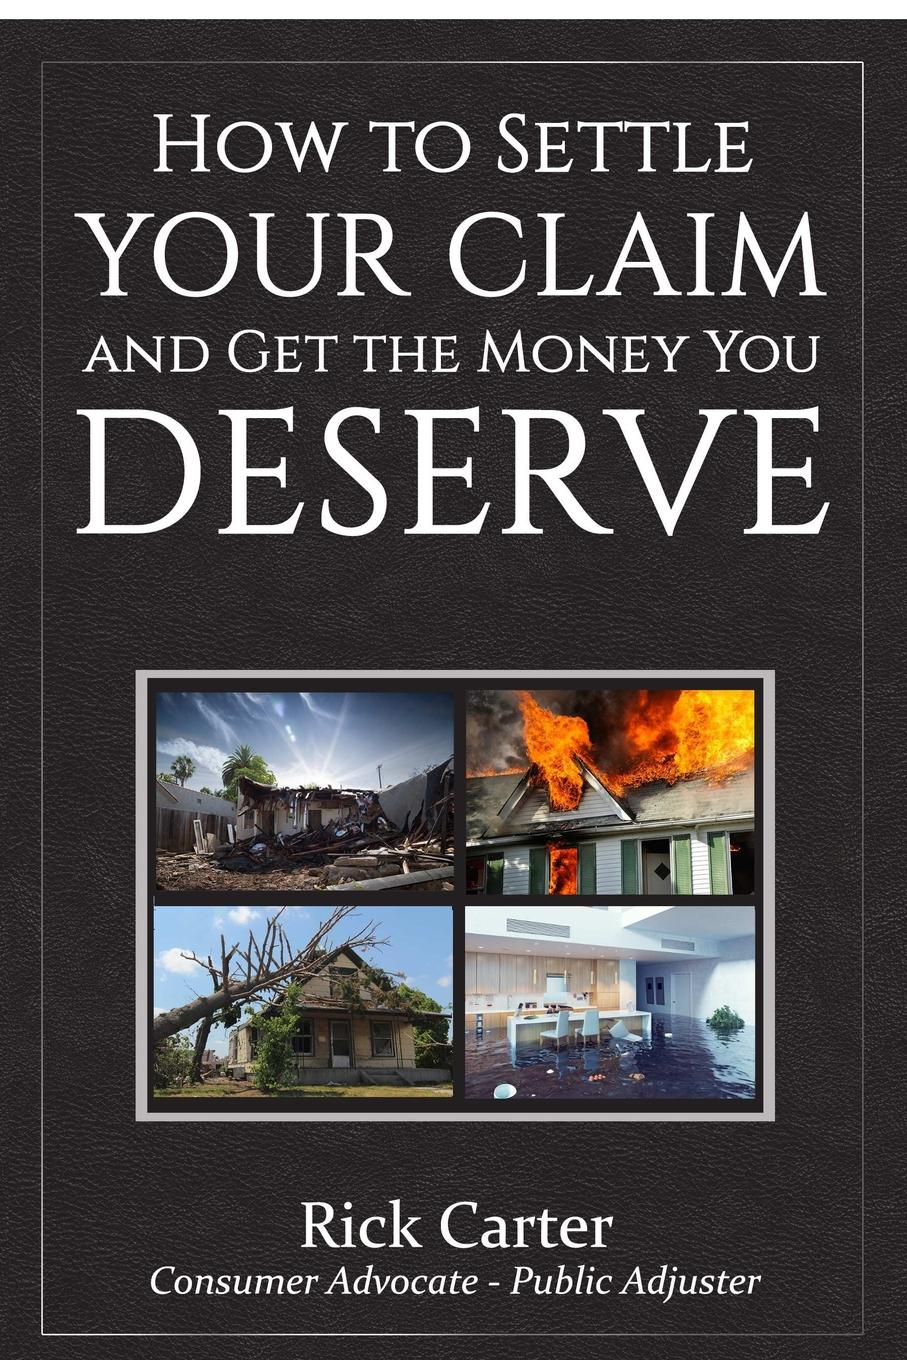 How to Settle Your Claim and Get The Money You Deserve Insurance claim for help for homeowners& property owners with...